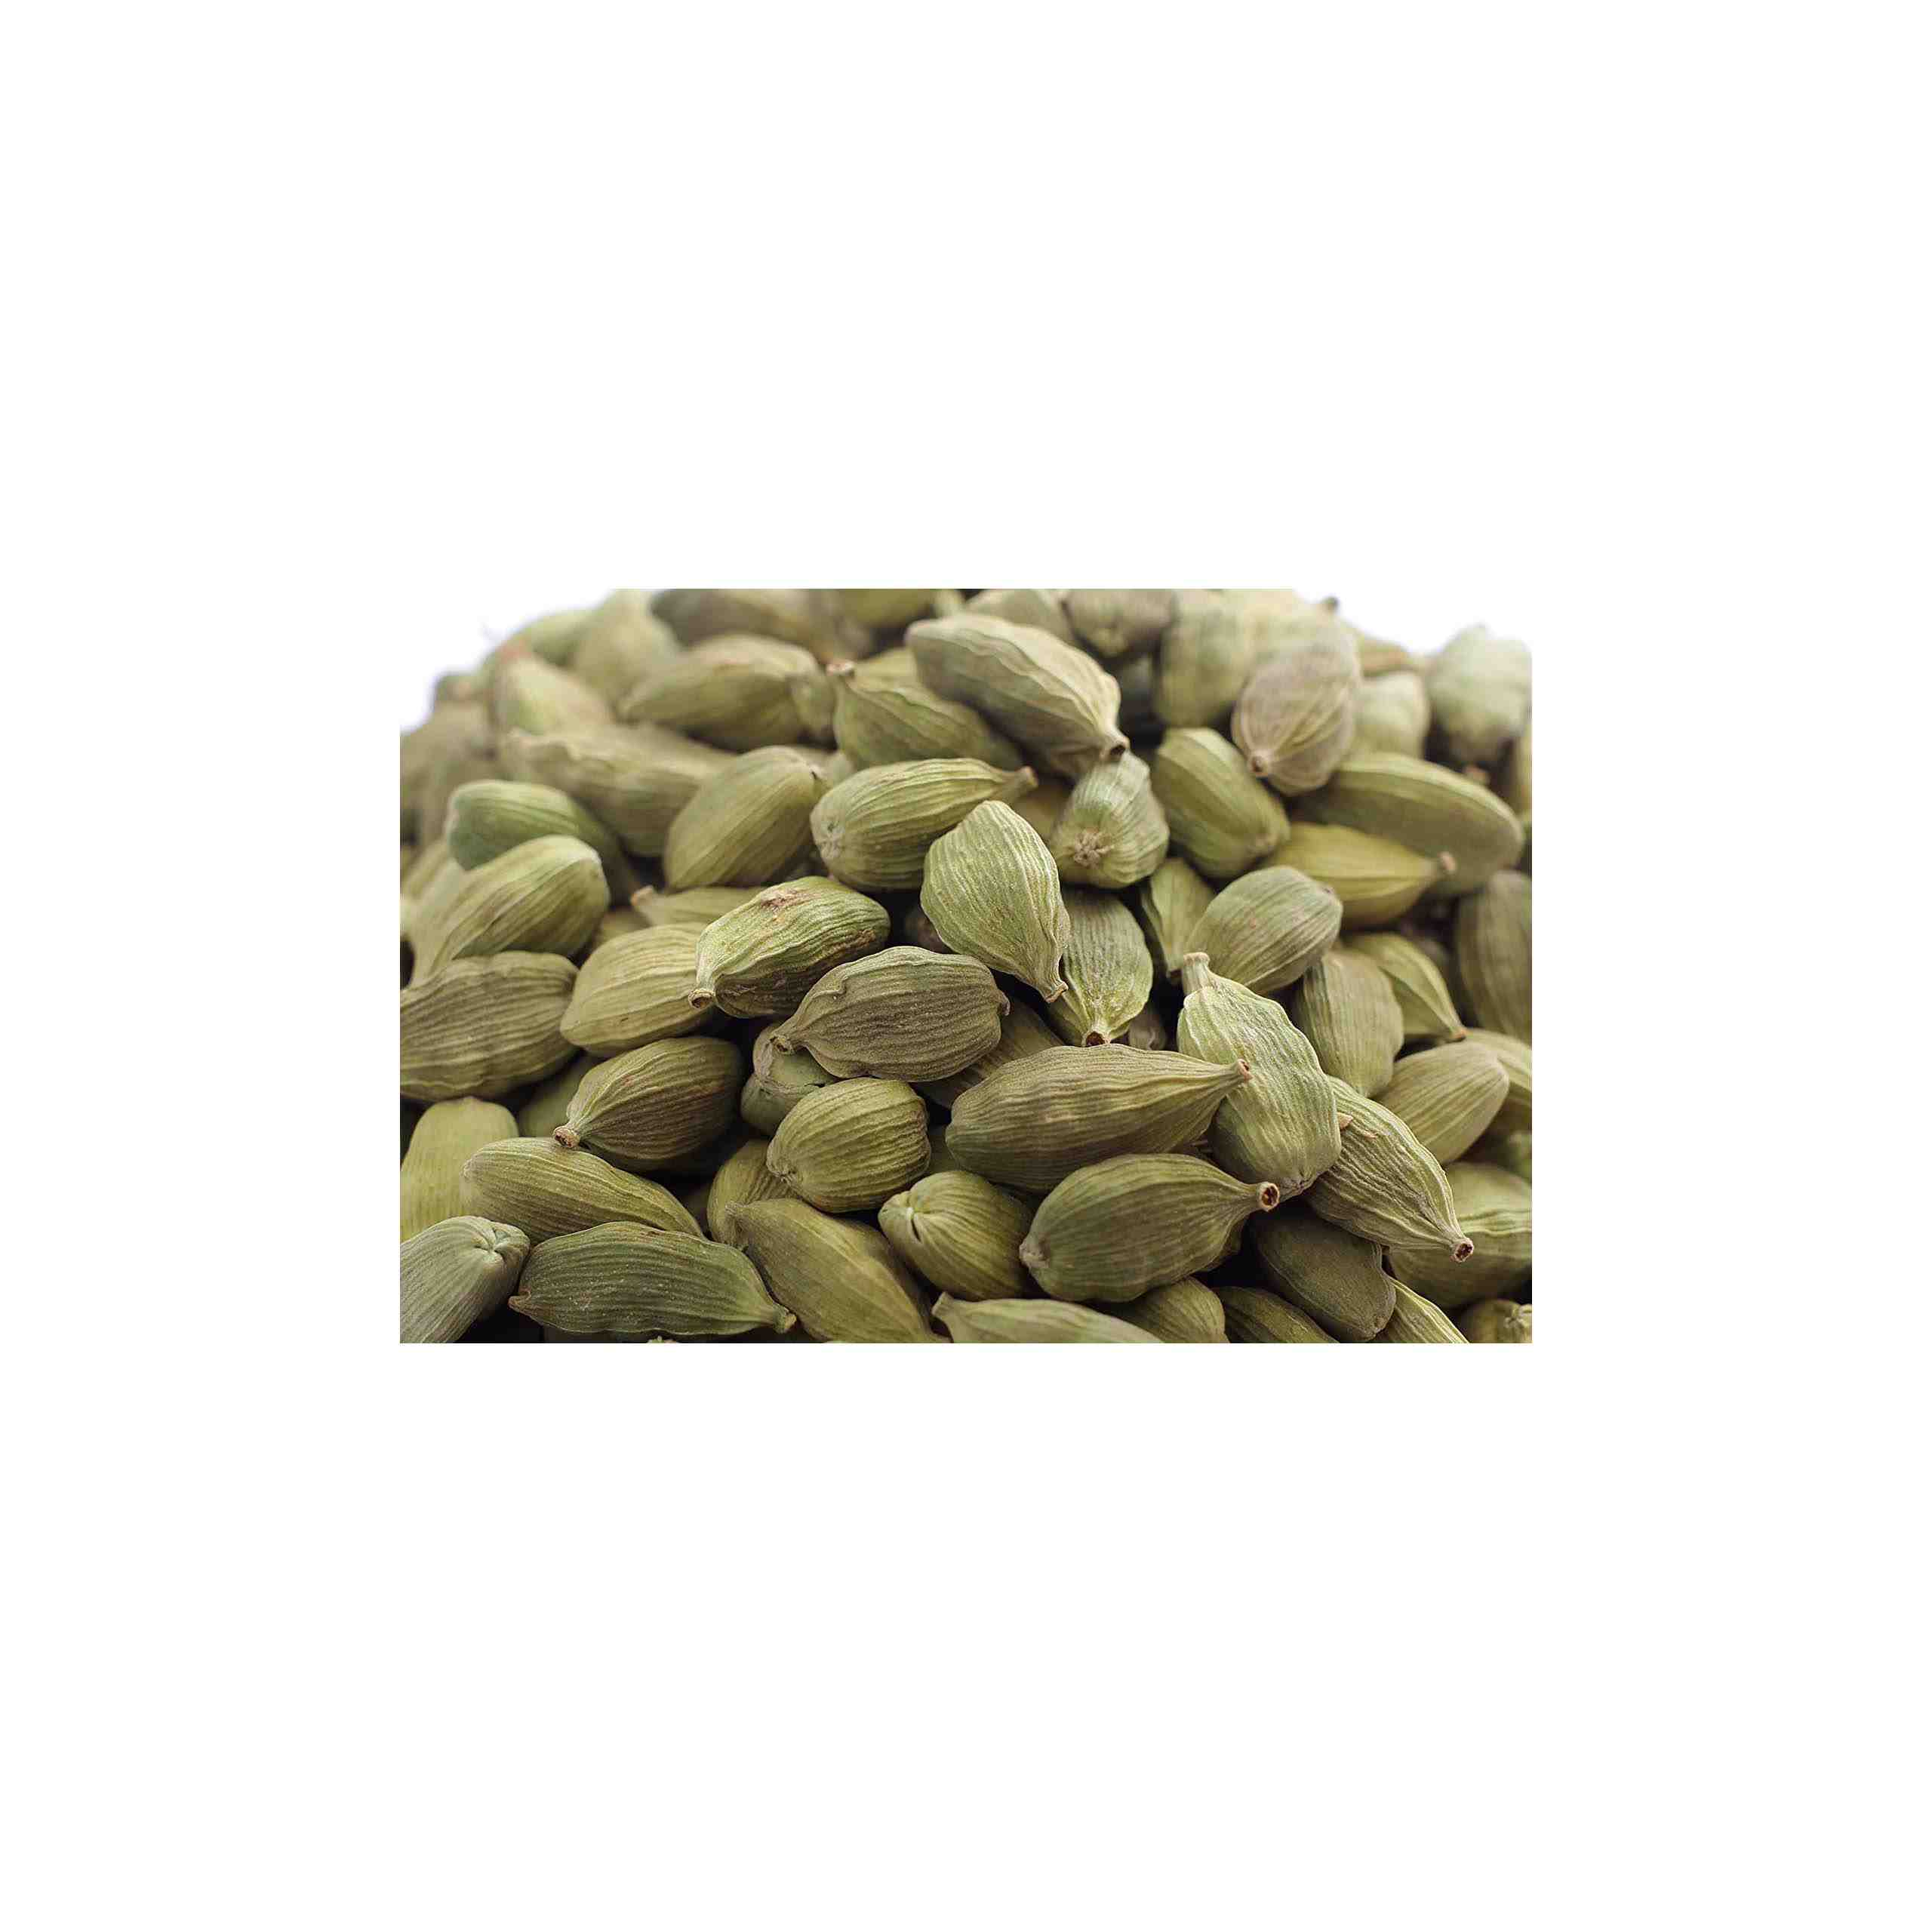 Seeds and Hands Wayanad Big Size 8mm Green Cardamom/Elaichi Whole [No Artificial Colors] Pack of 2 x 100g (200g)